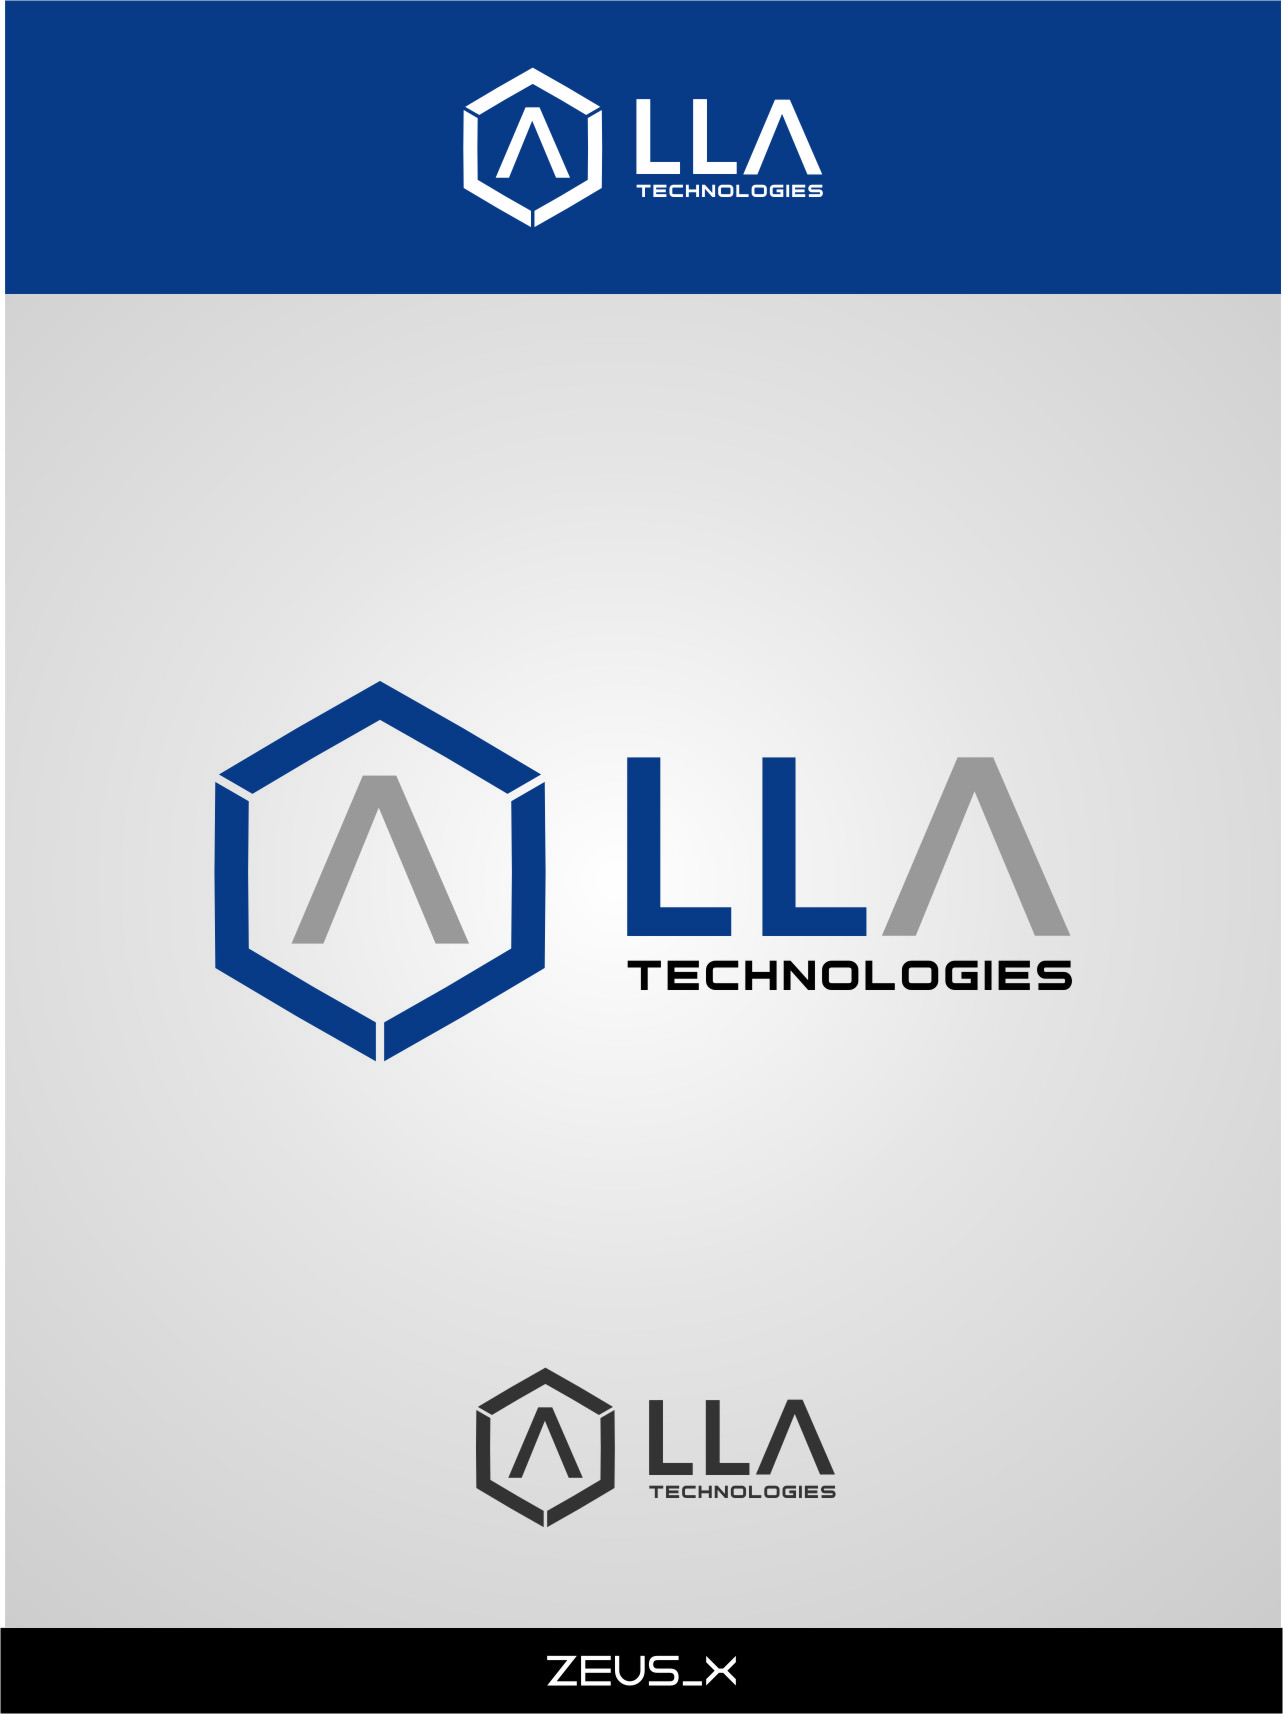 Logo Design by Ngepet_art - Entry No. 86 in the Logo Design Contest Inspiring Logo Design for LLA Technologies Inc..